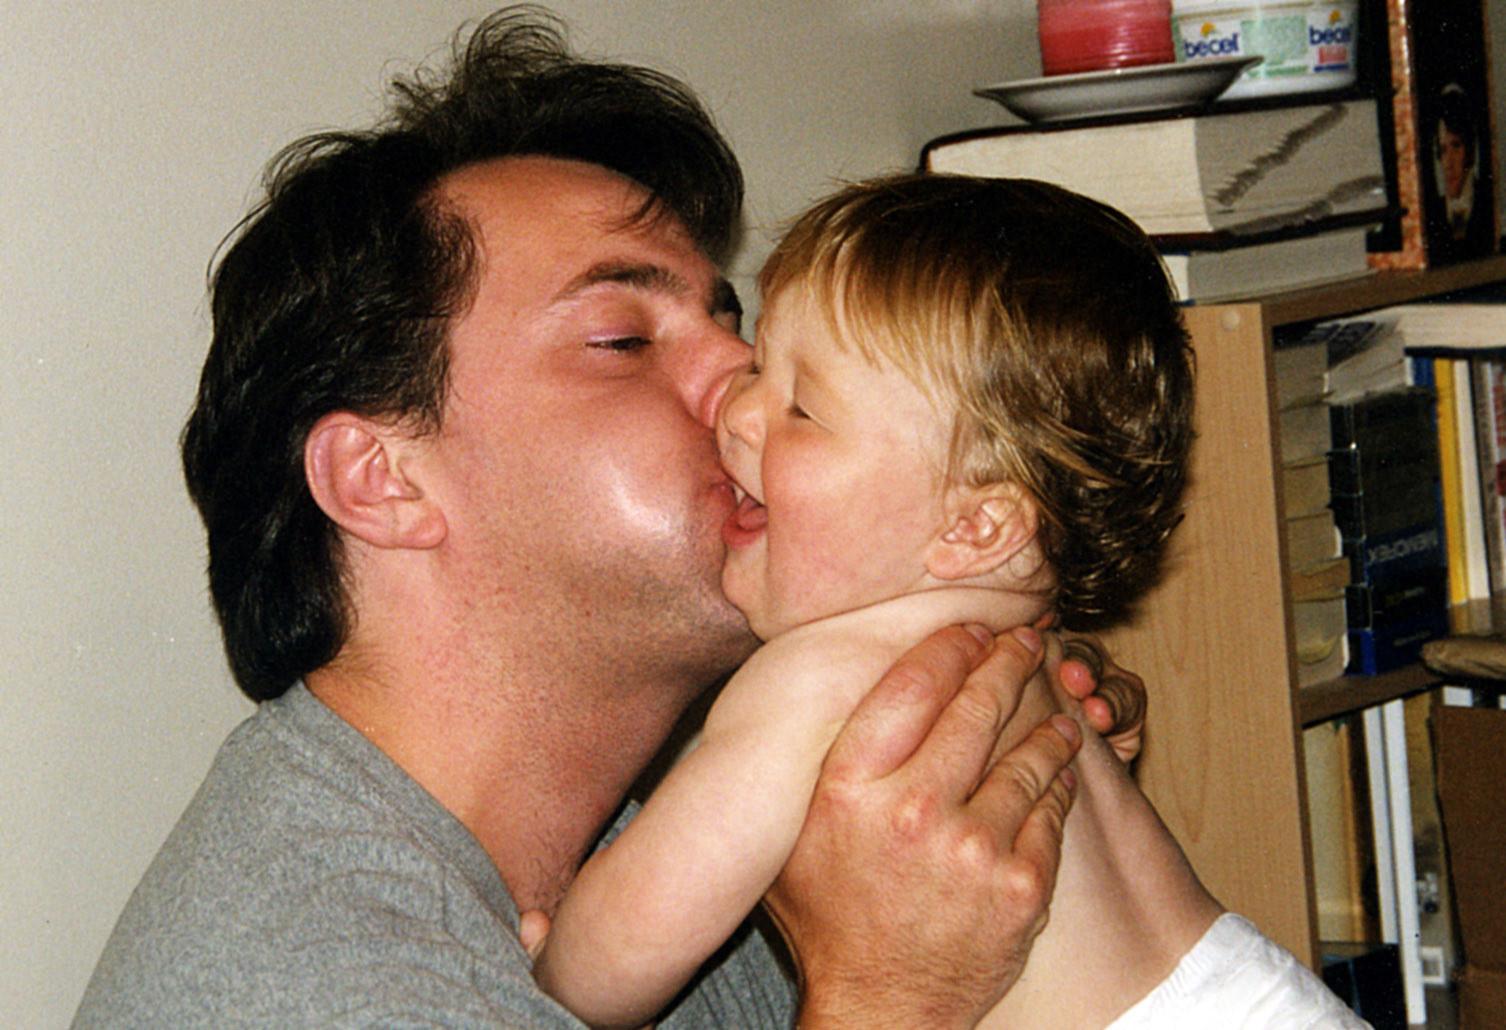 Andrew kissing his baby son, Zachary, on the cheek